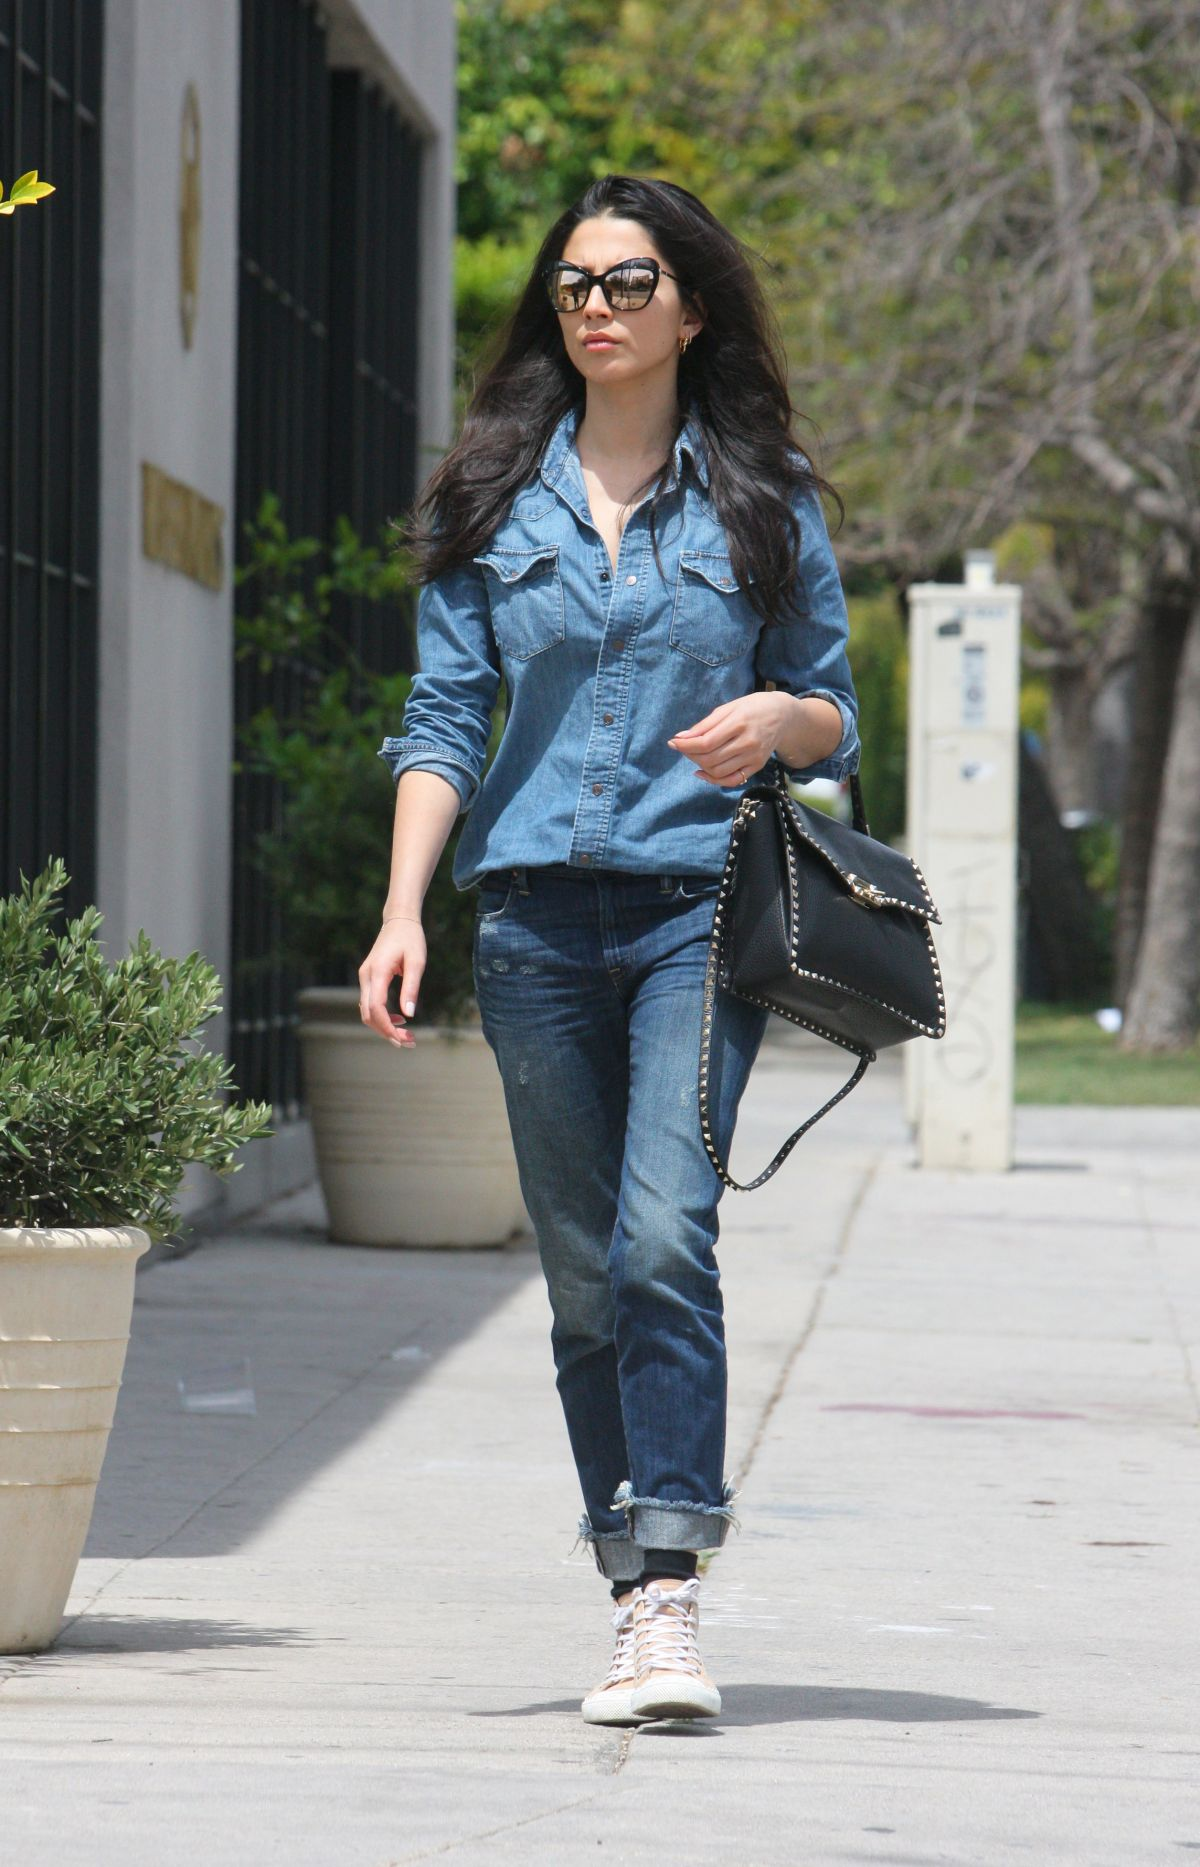 Watch Jessica gomes in casual attire west hollywood video